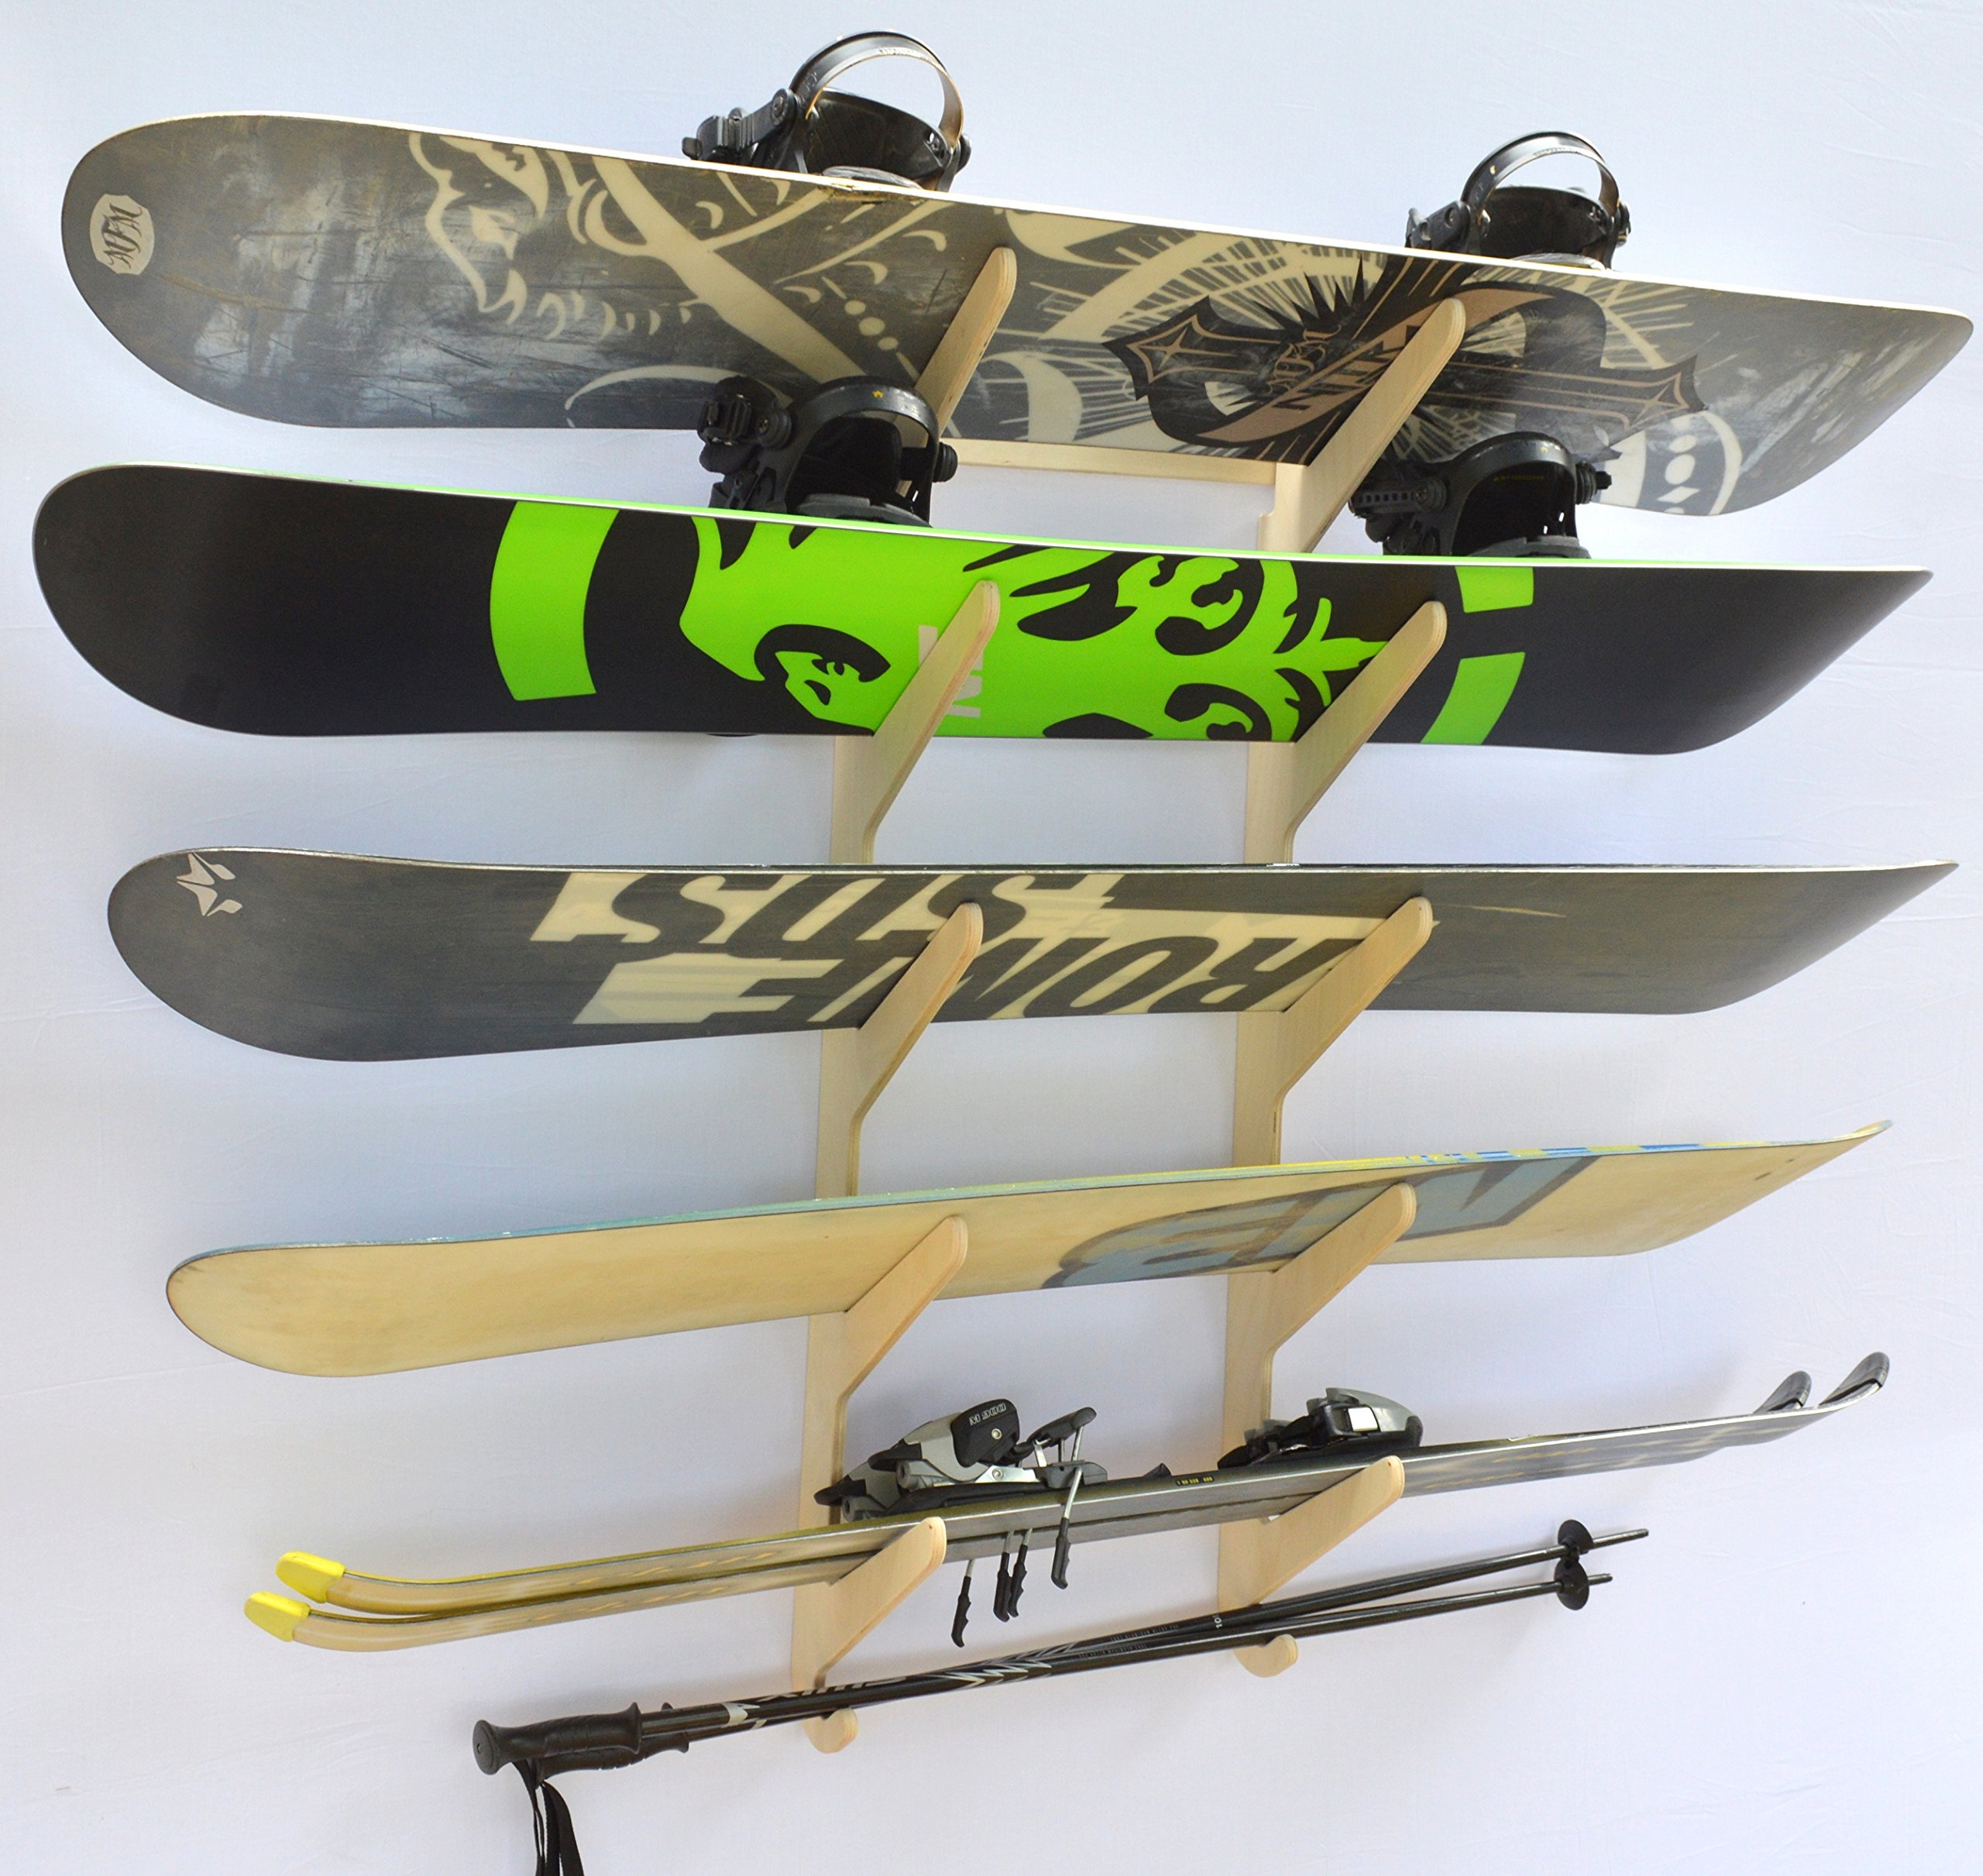 Snowboard Ski Hanging Wall Rack -- Holds 5 Boards by Pro Board Racks